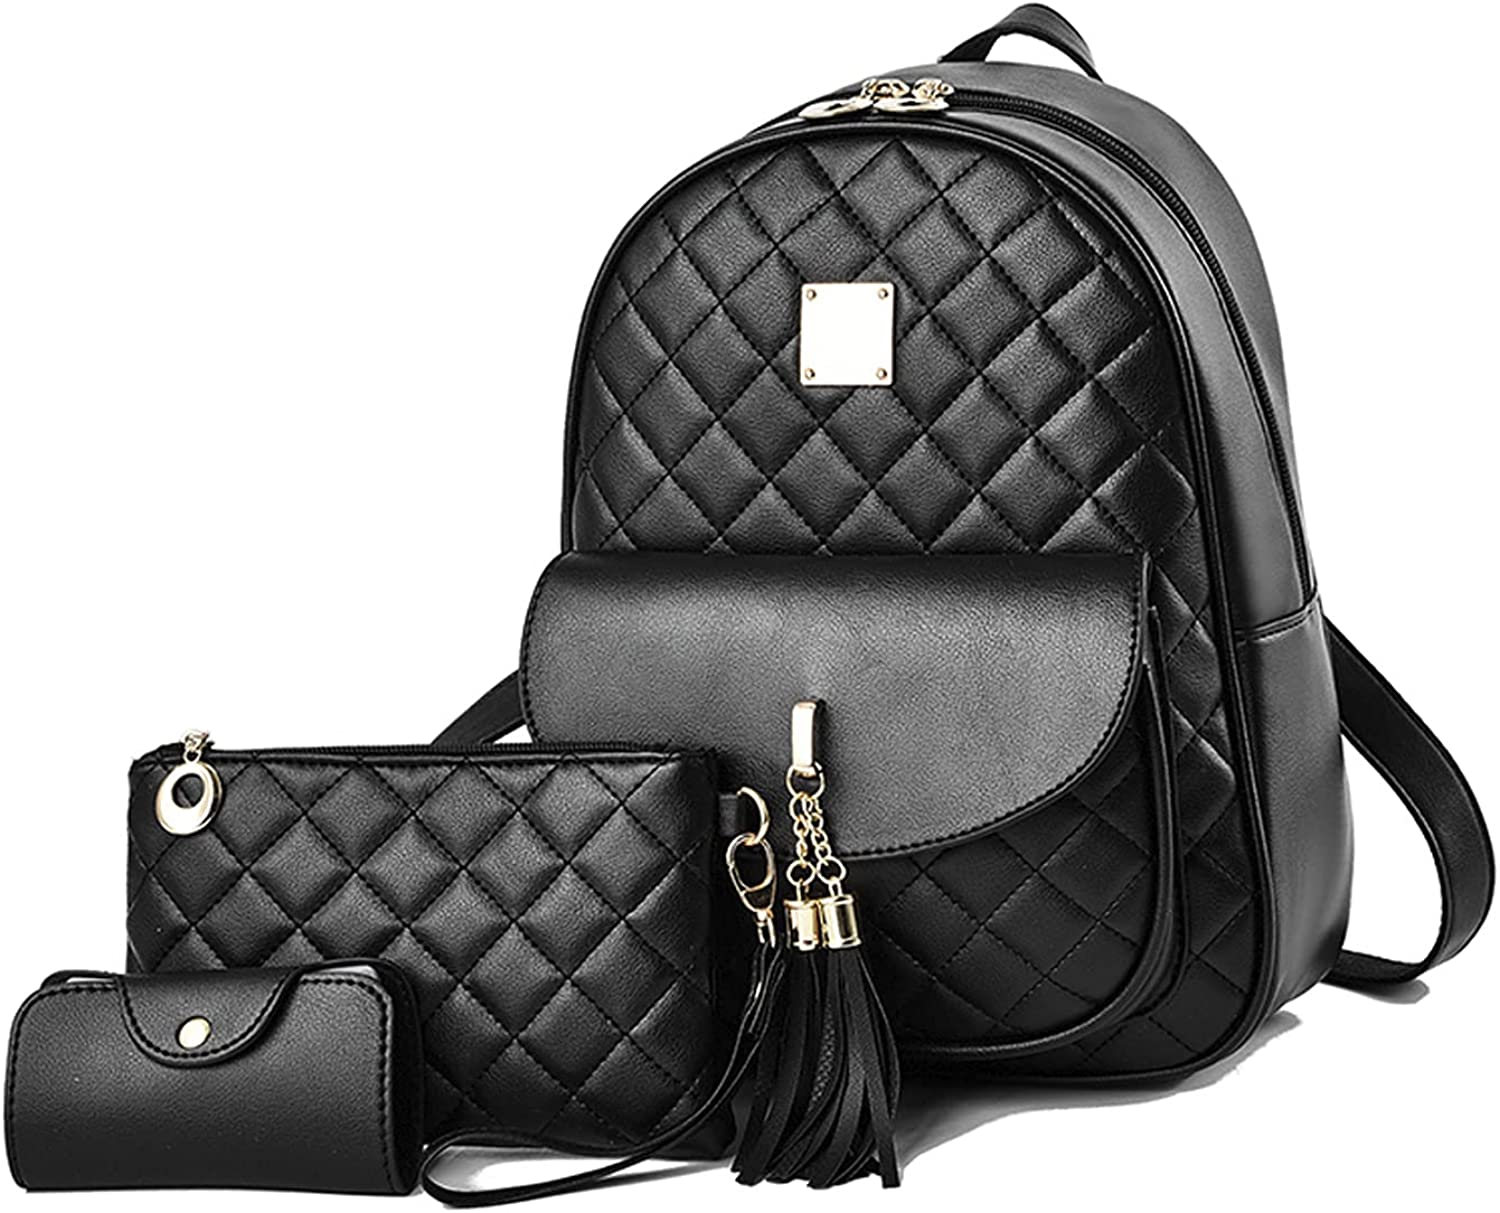 Lanpet Women's Fashion Backpack Purse 3-pieces PU Leather Shoulder Bags Ladies Travel BookbagCasual Backpack 3 in 1 Set